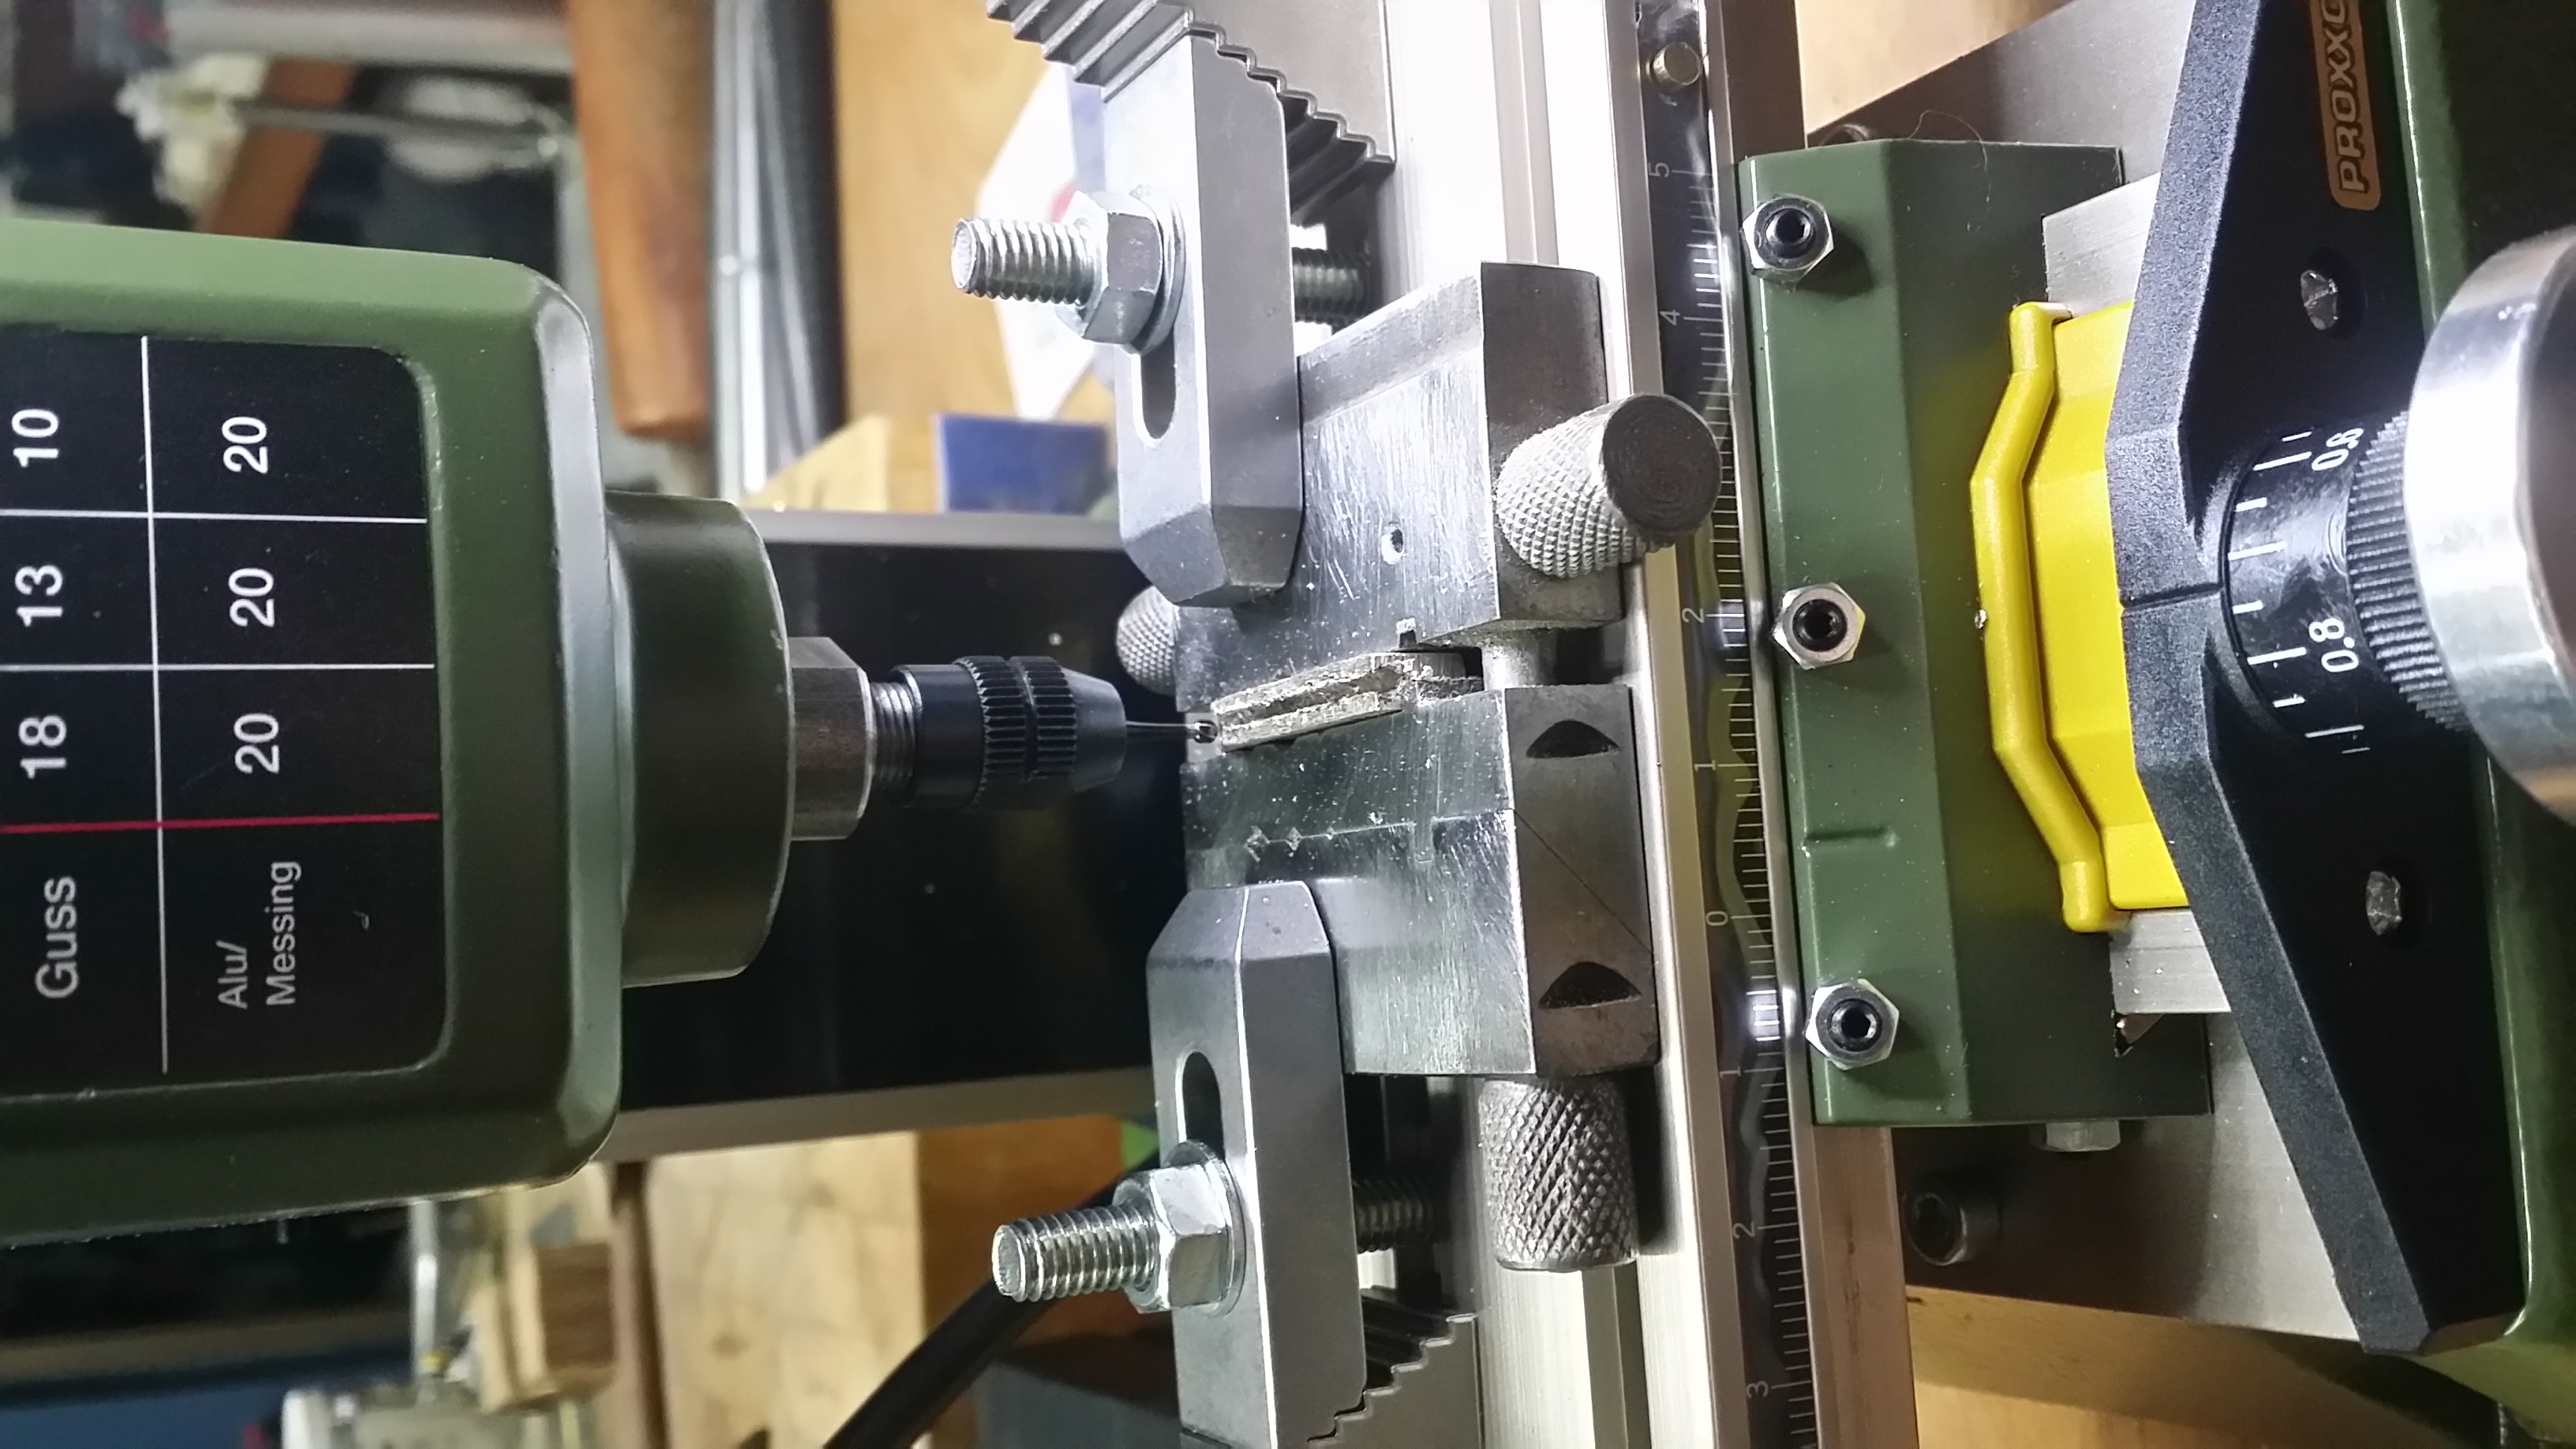 Micro lathe in action